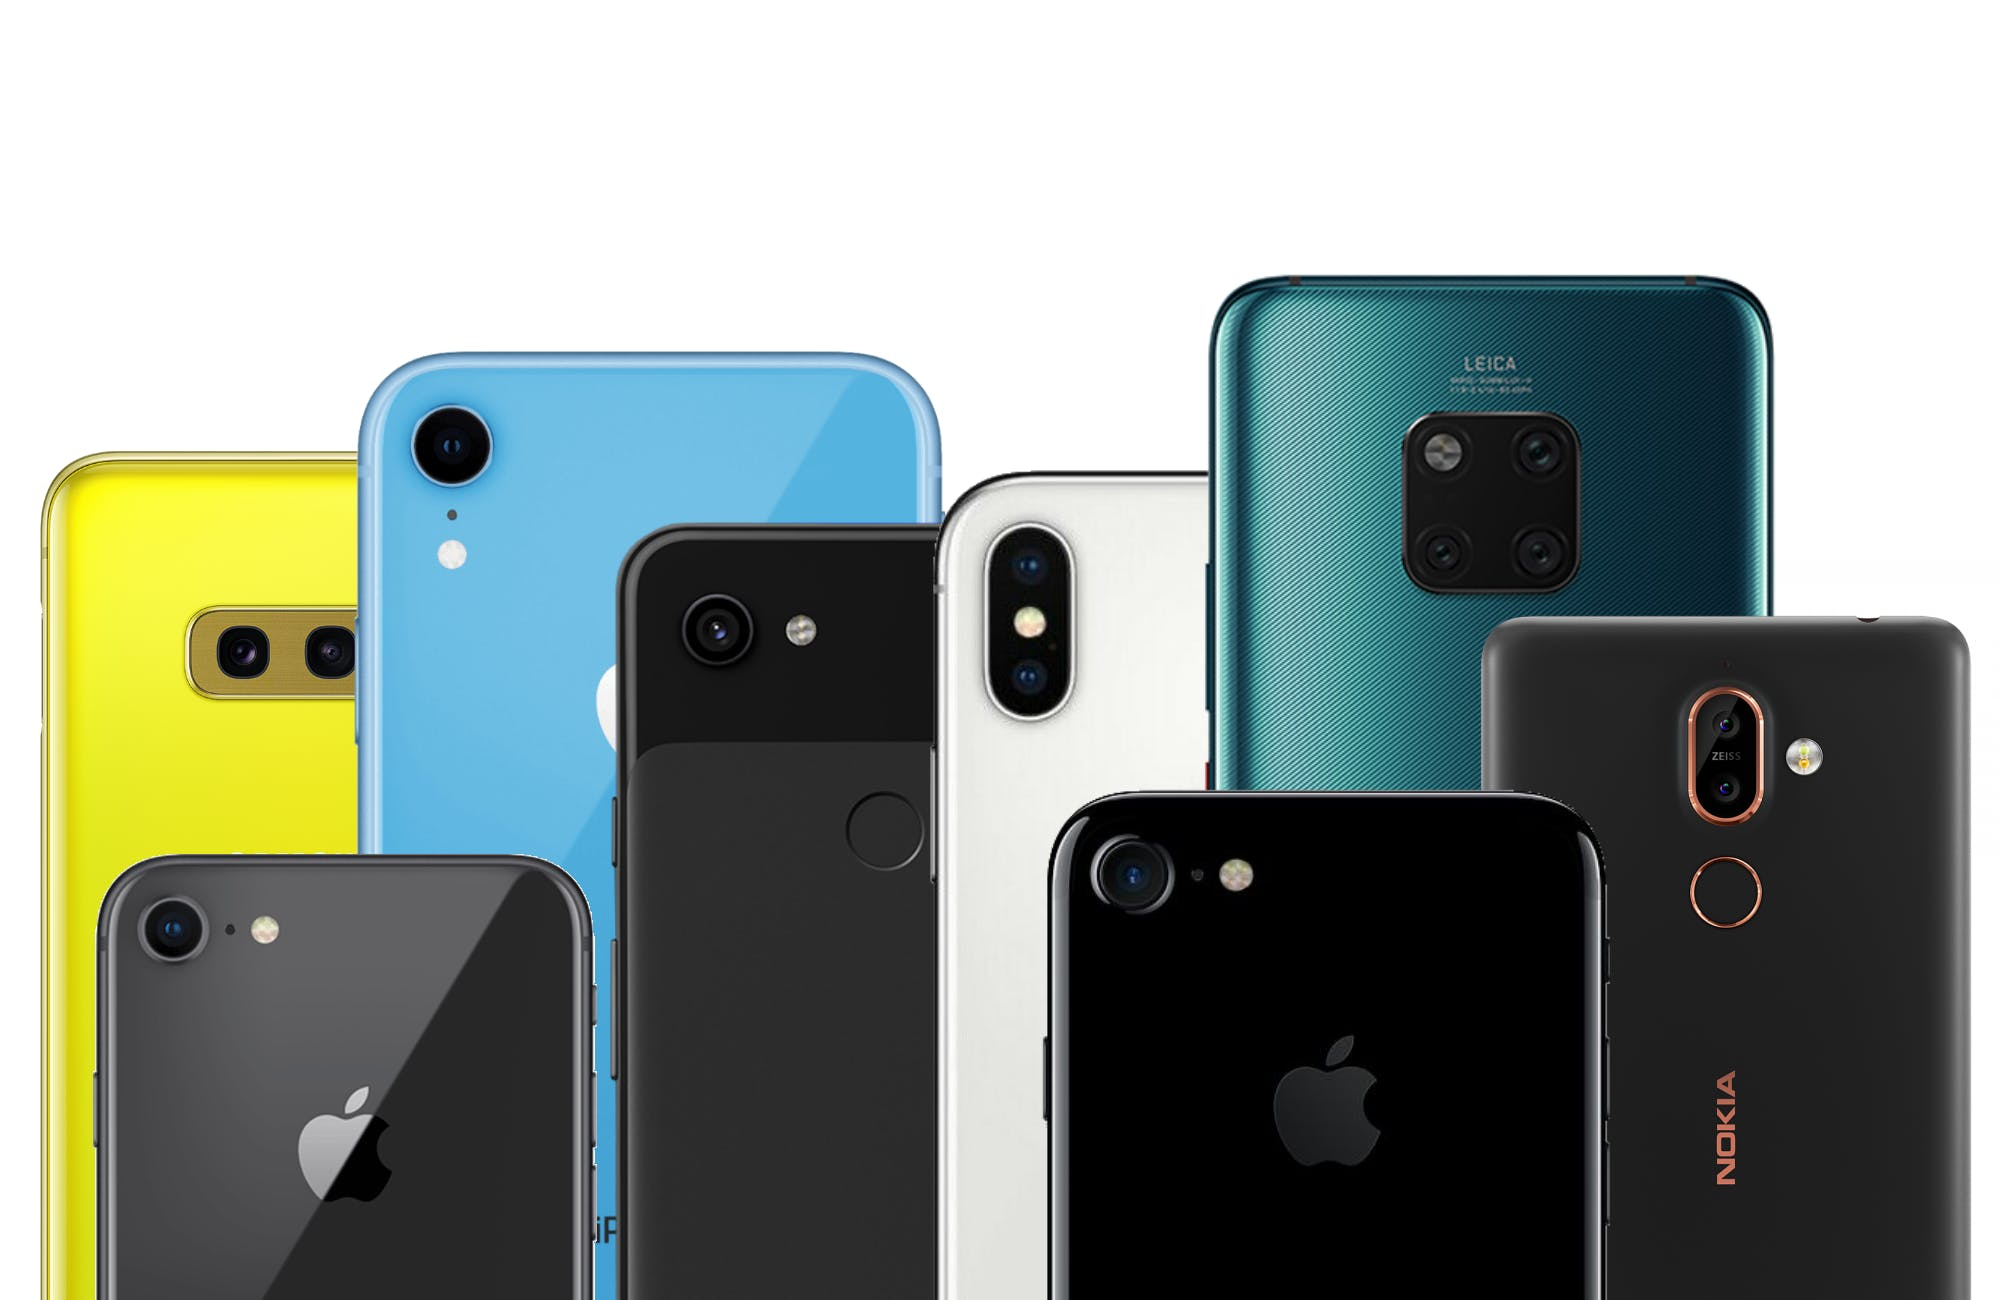 Best Refurbished Smartphones to Buy in 2020 For Any Budget